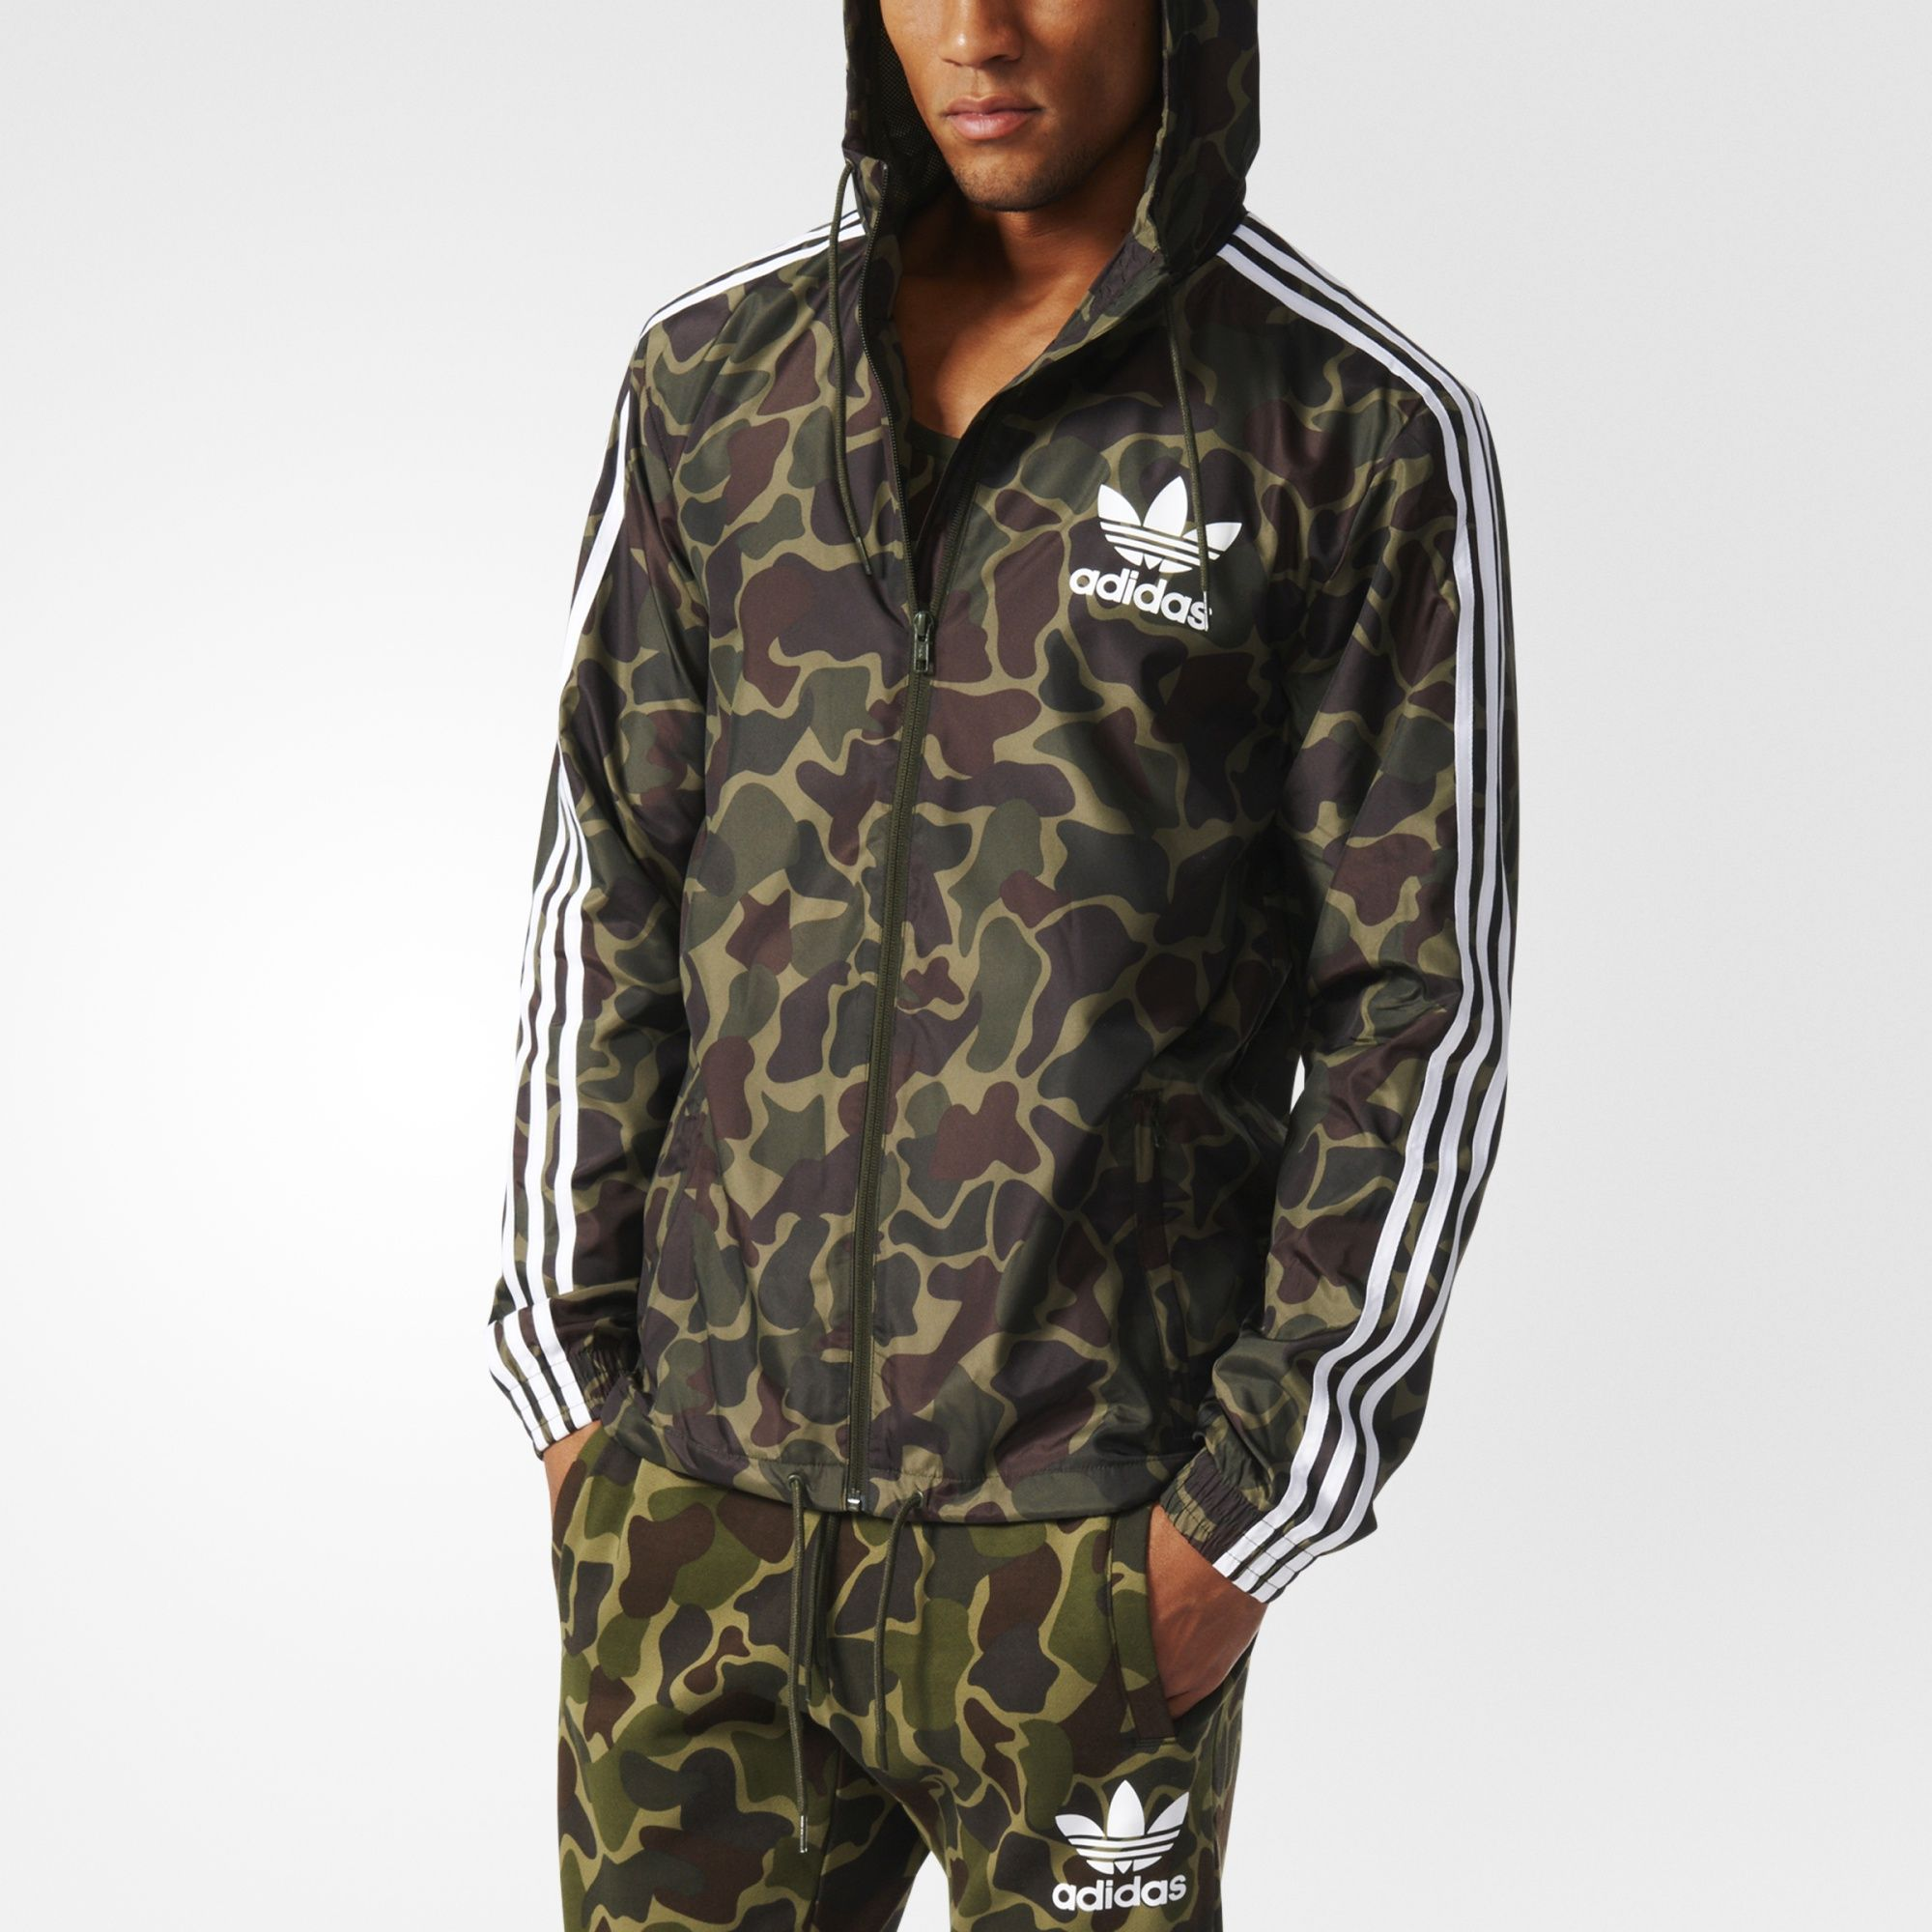 ADIDAS ORIGINALS CAMOUFLAGE WINDBREAKER BJ9997 MULTICOLOR in